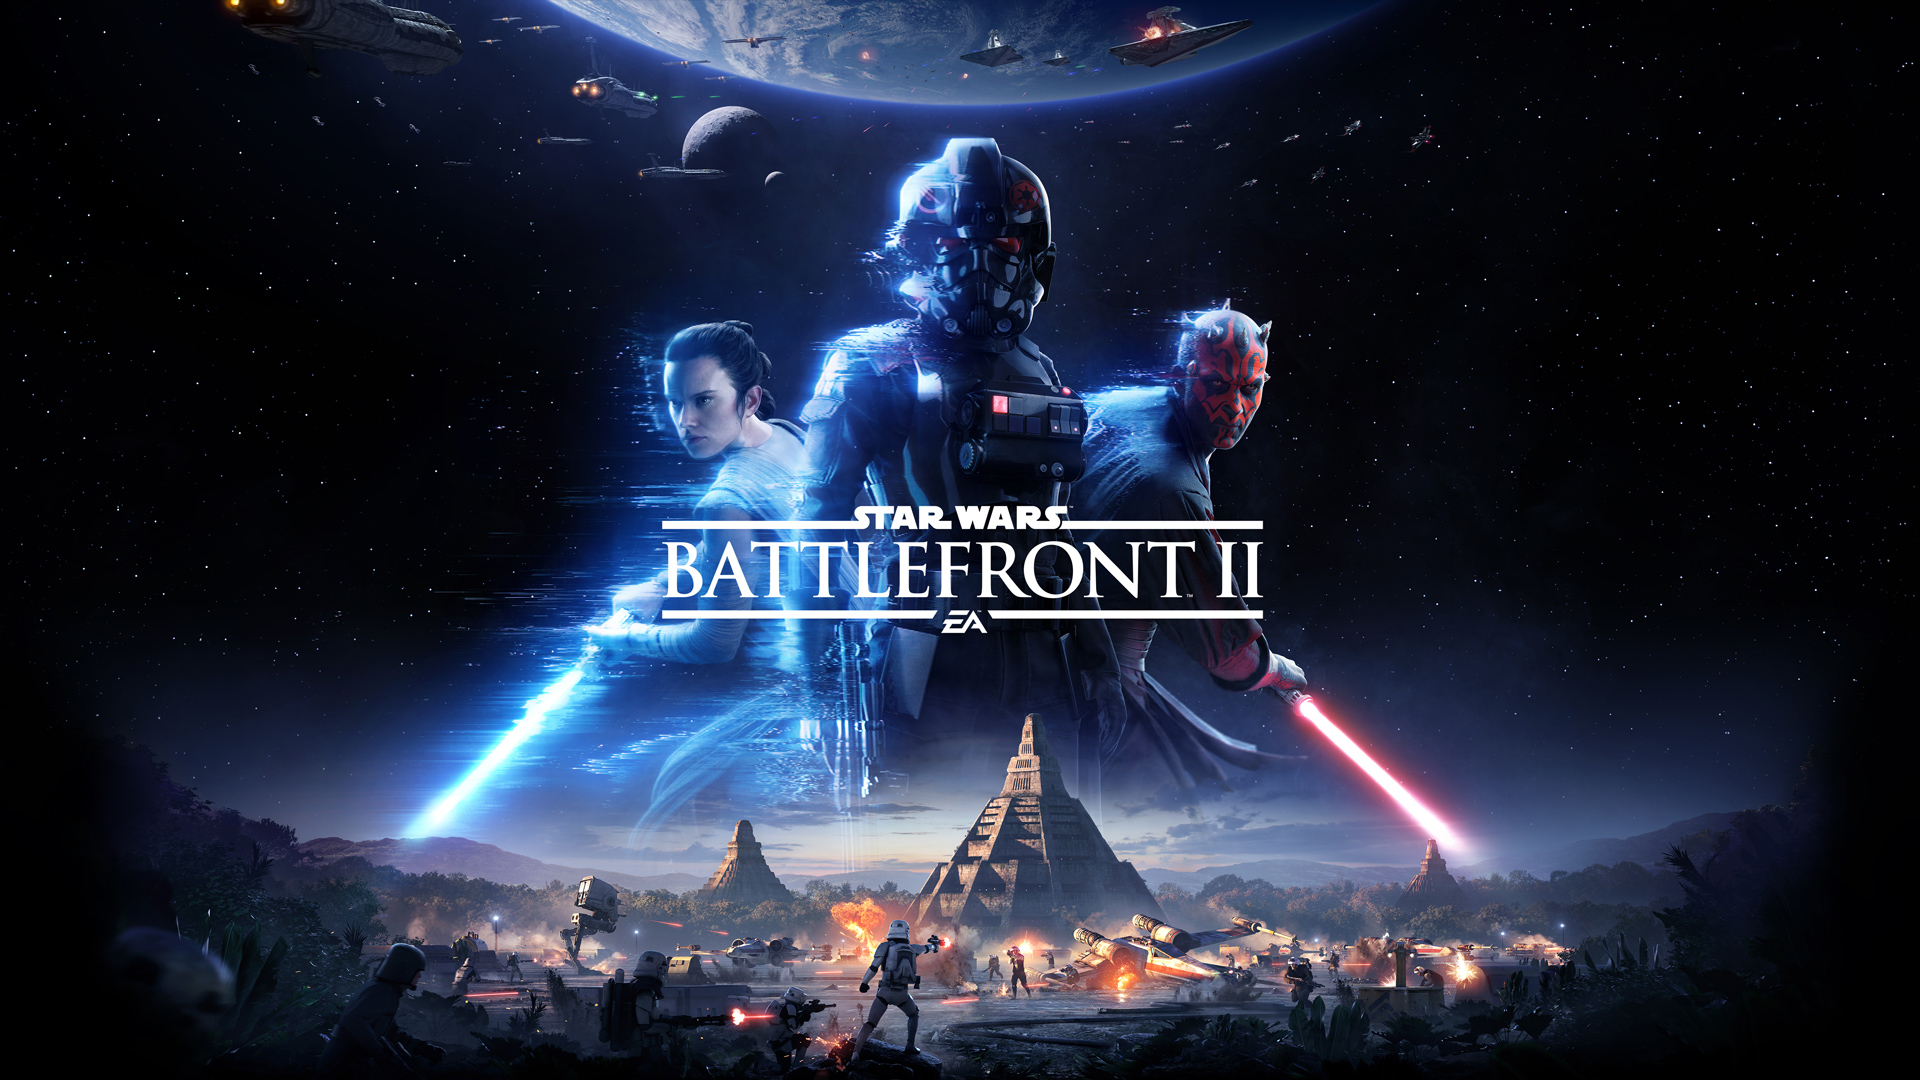 Star Wars Battlefront II Open Beta To Come This October